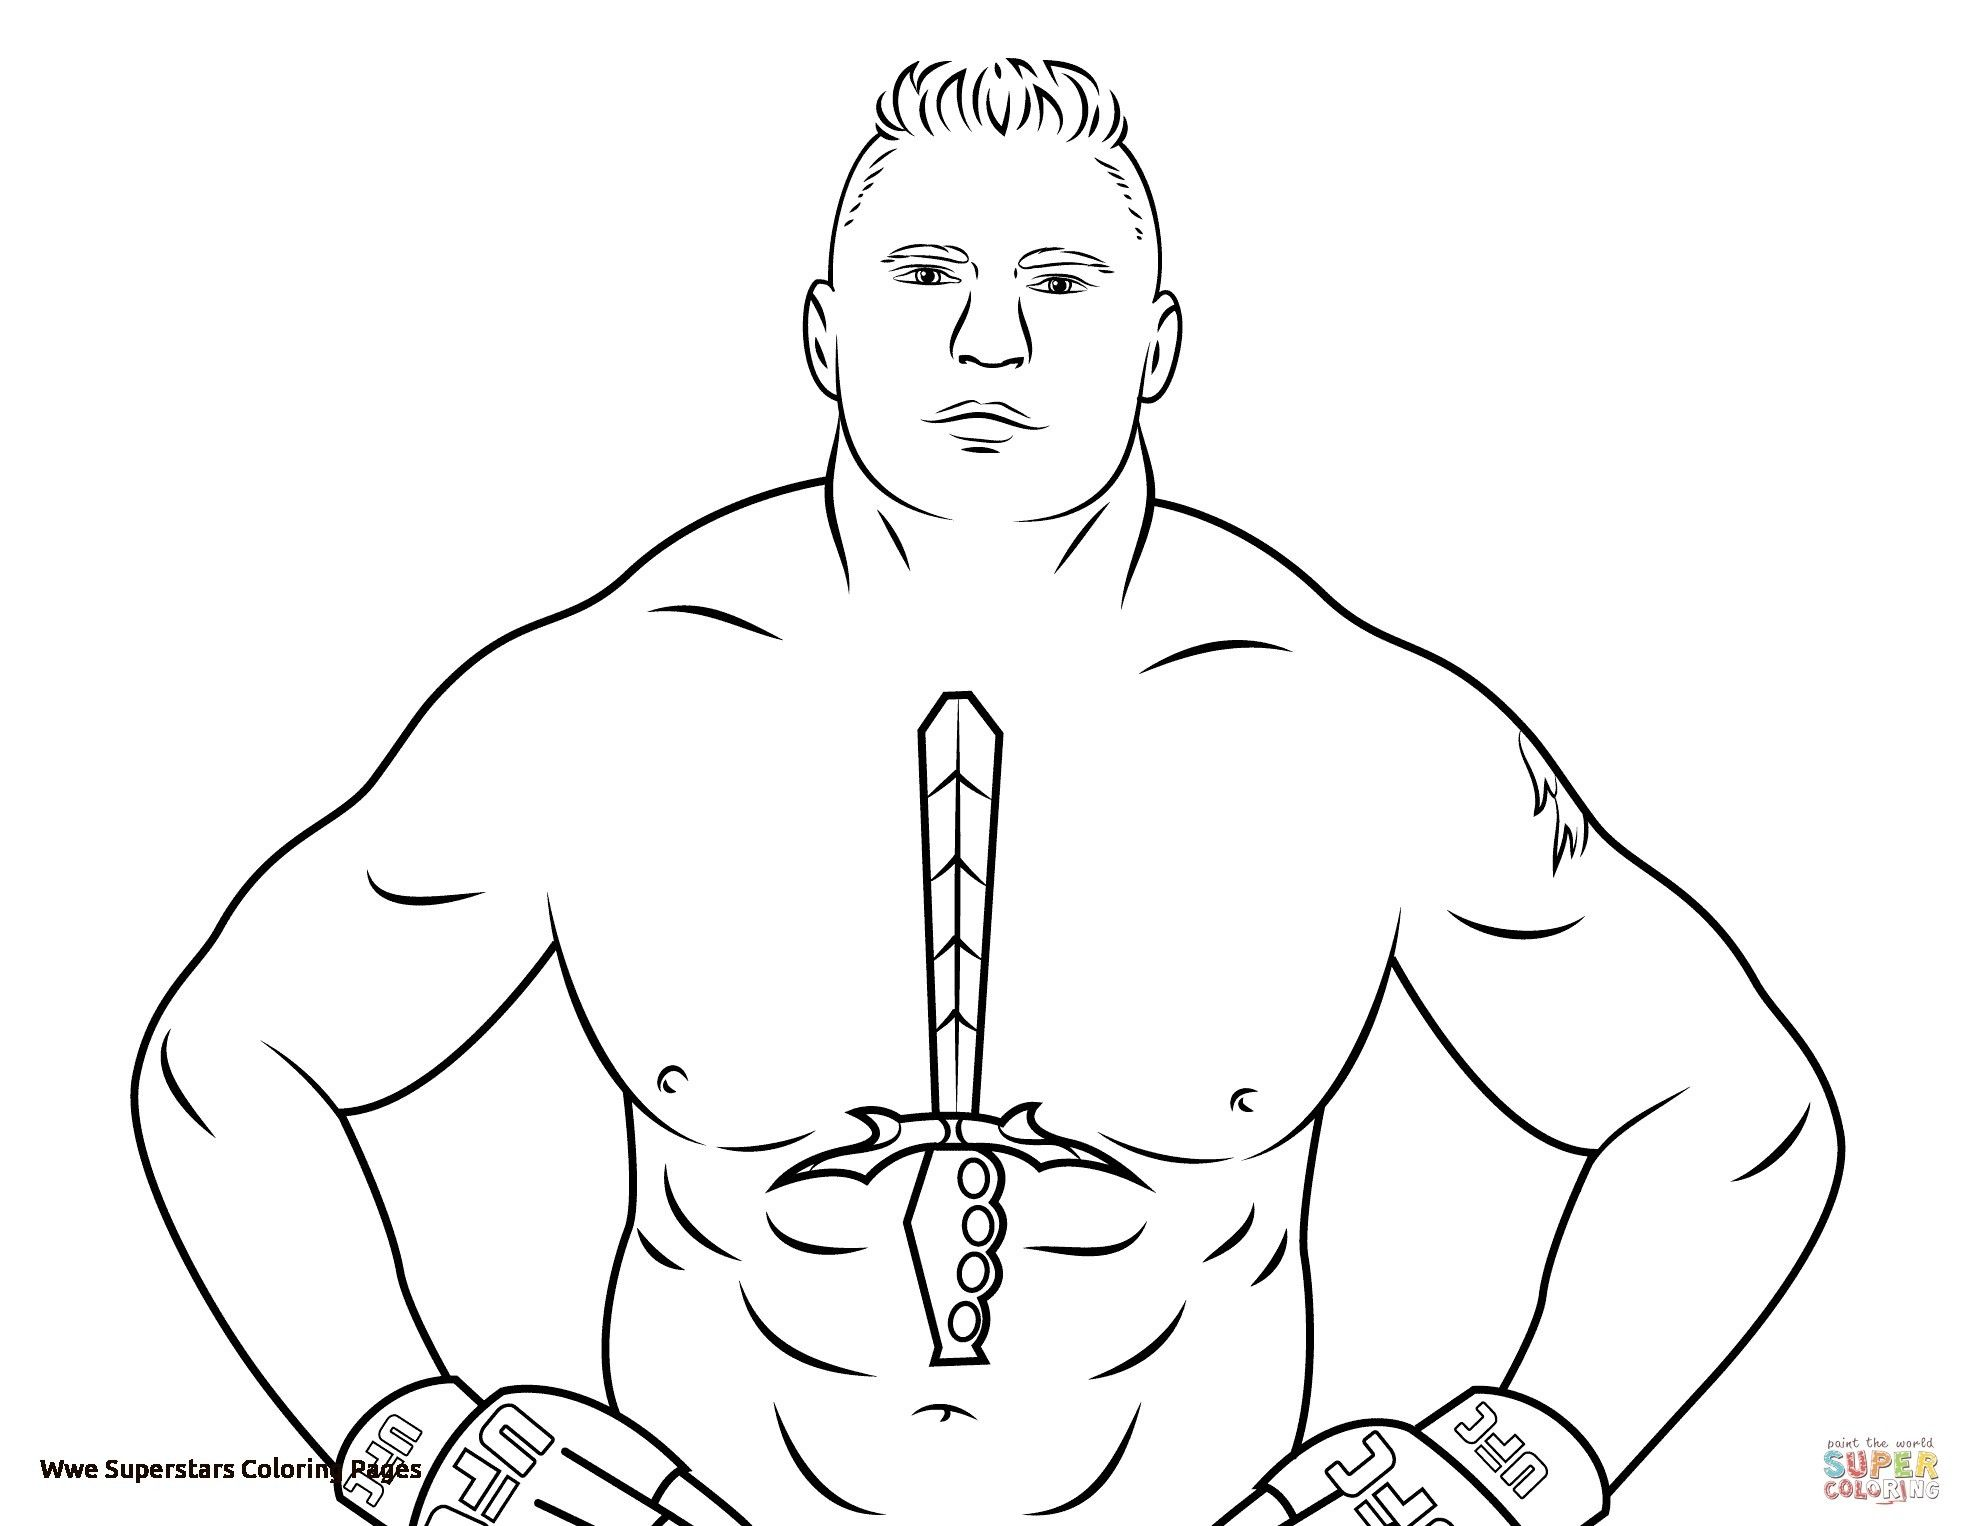 Brock Lesnar Coloring Pages Printable Wwe Coloring Pages Coloring Pages Brock Lesnar